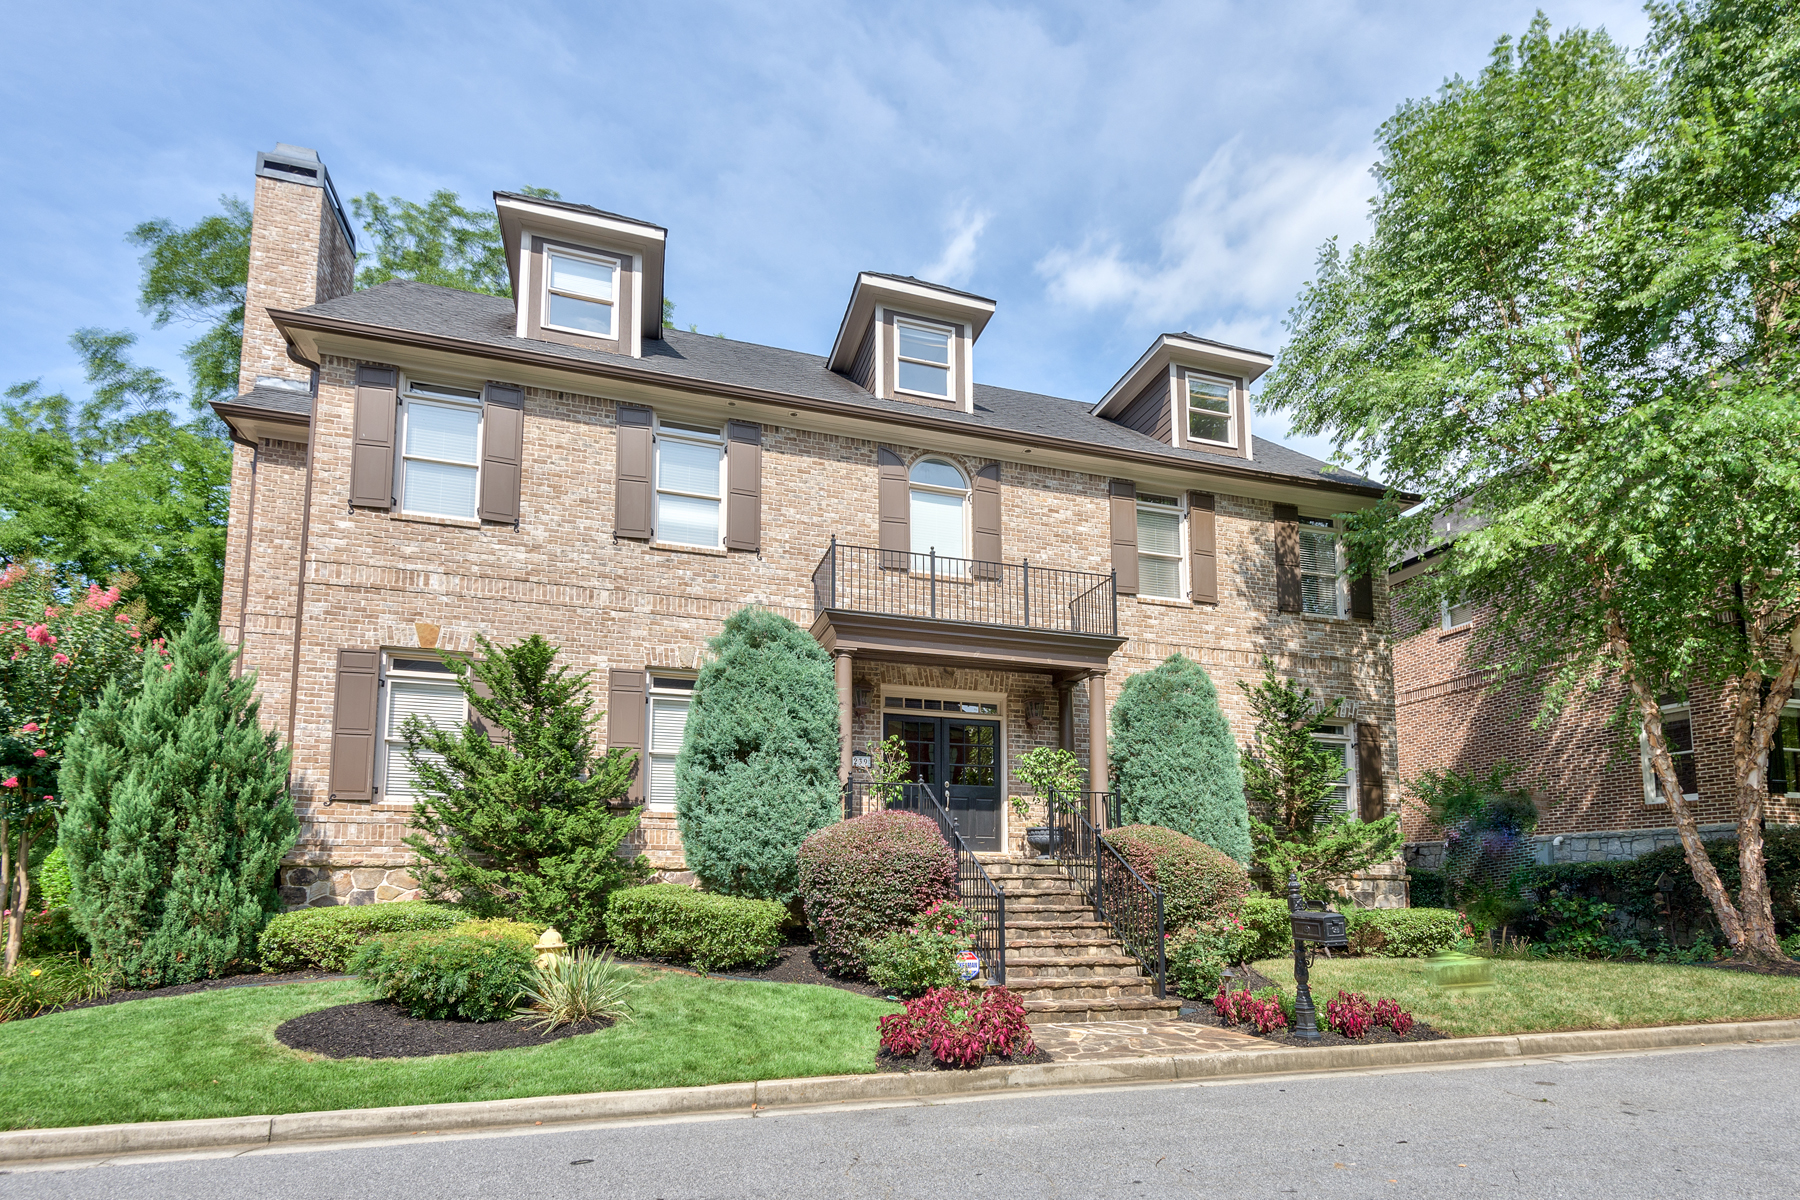 Property For Sale at Stunning Brick Traditional On Cul-de-sac